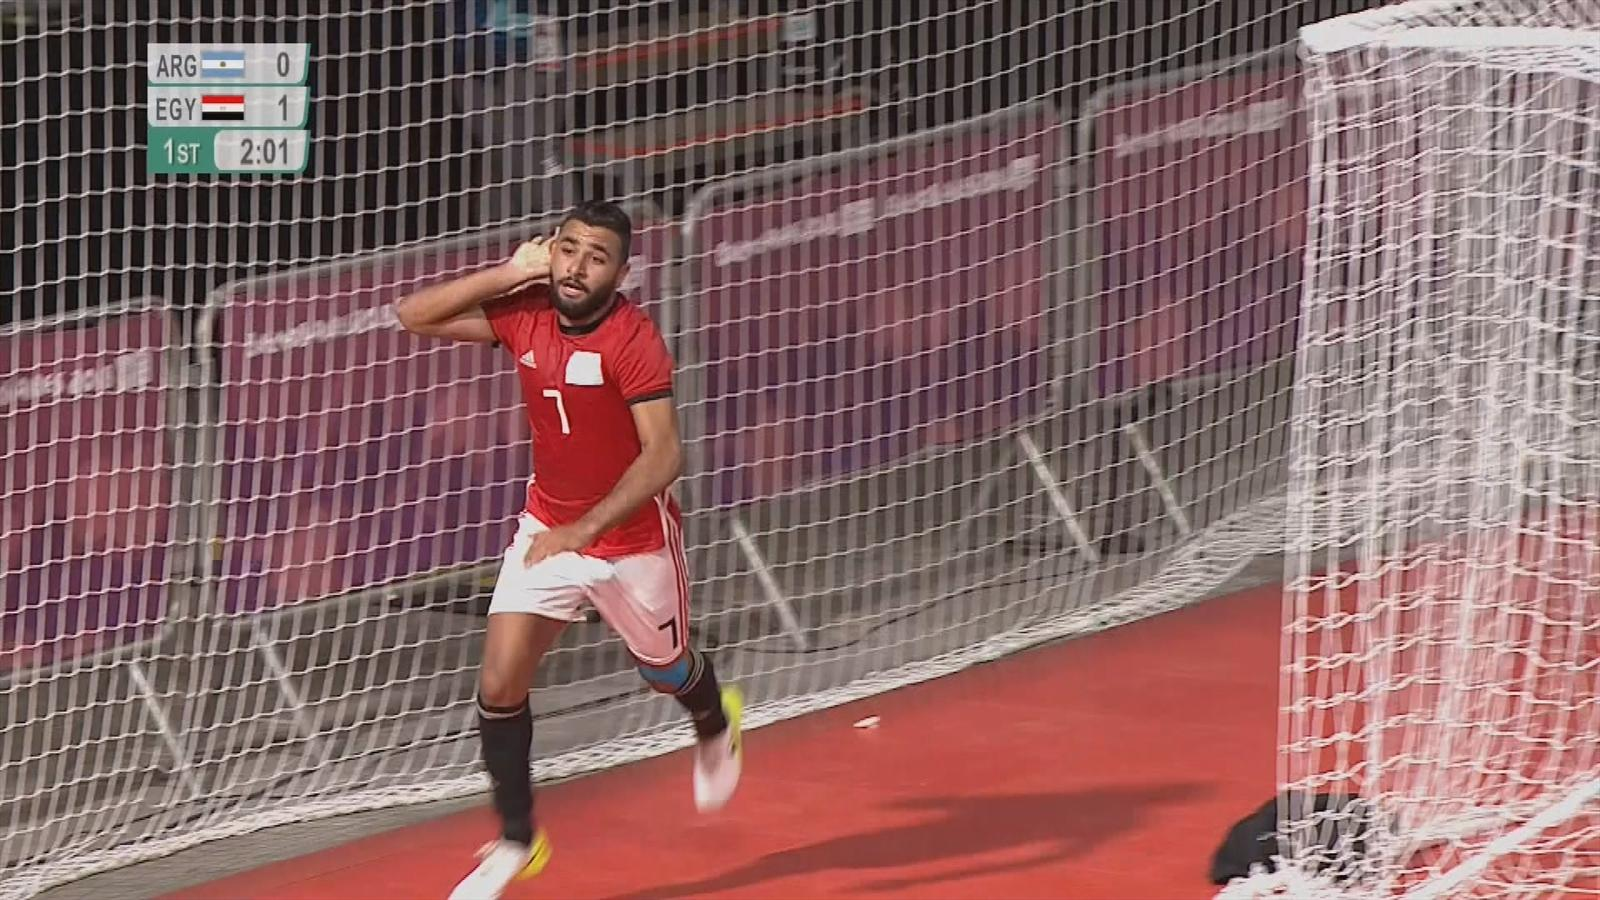 d7b6a751ea VIDEO - Futsal highlights  Wild scenes as Argentina snatch late draw ...